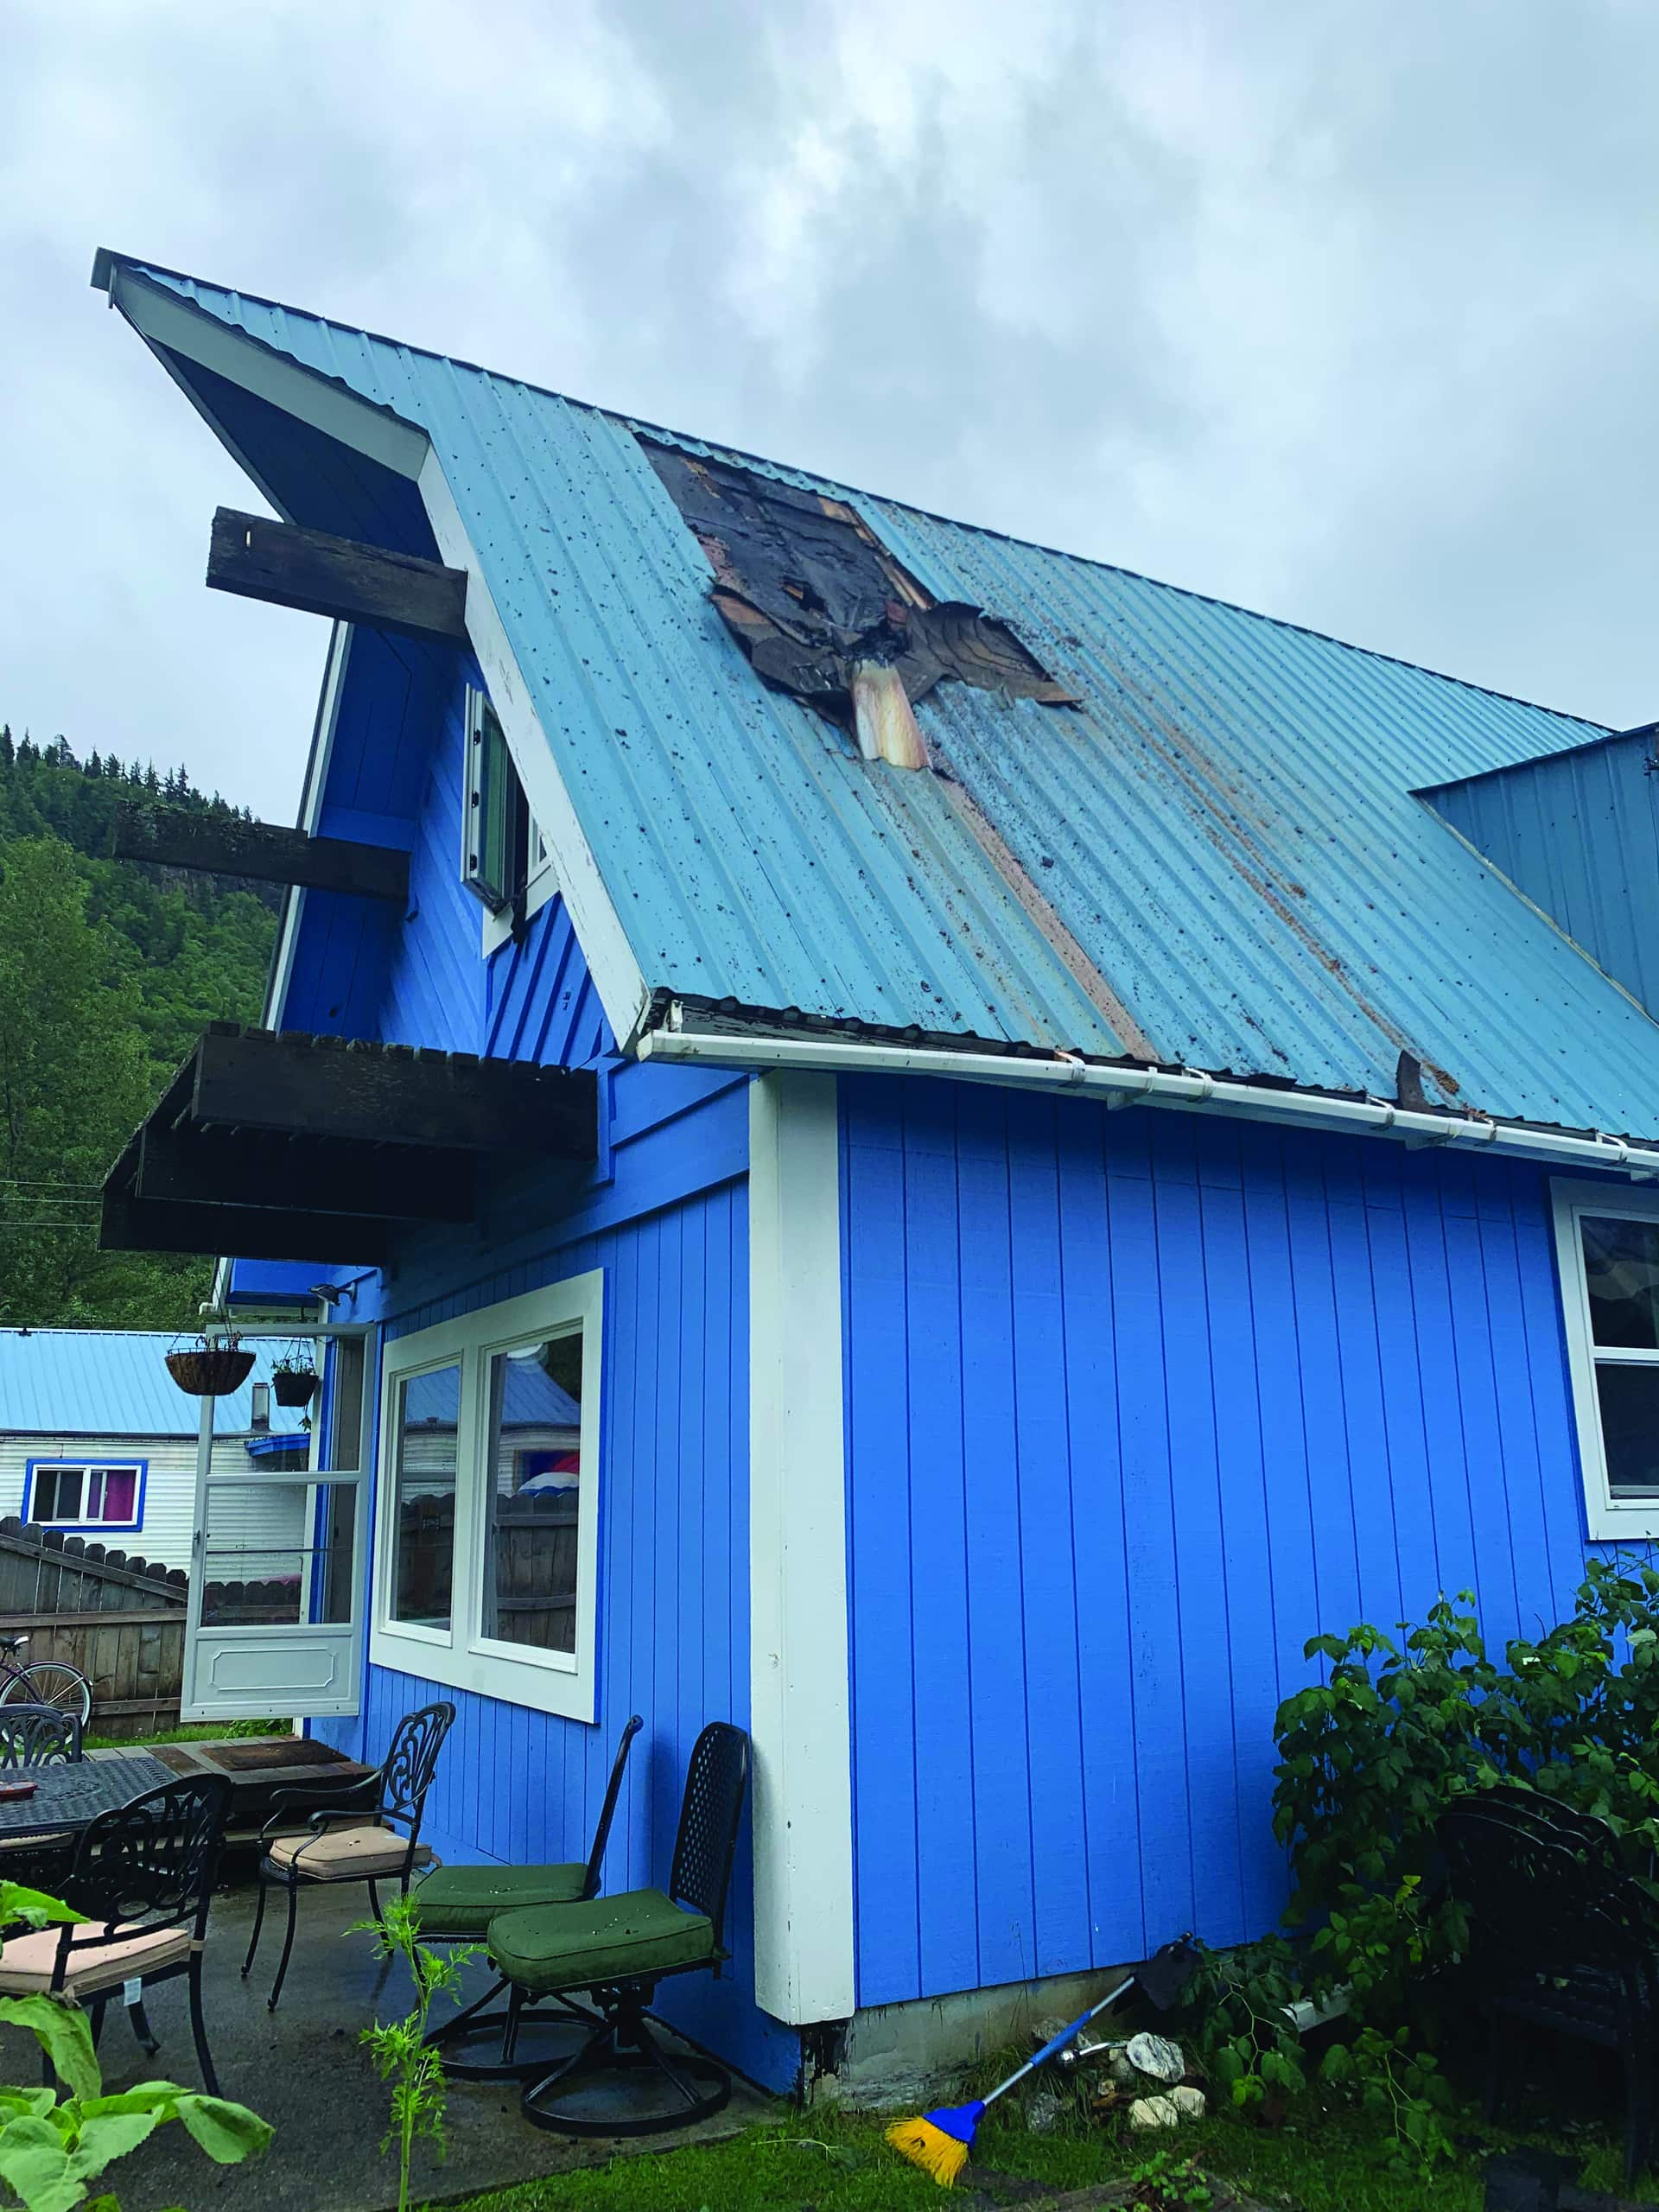 Fire displaces Skagway family, community rushes in to help